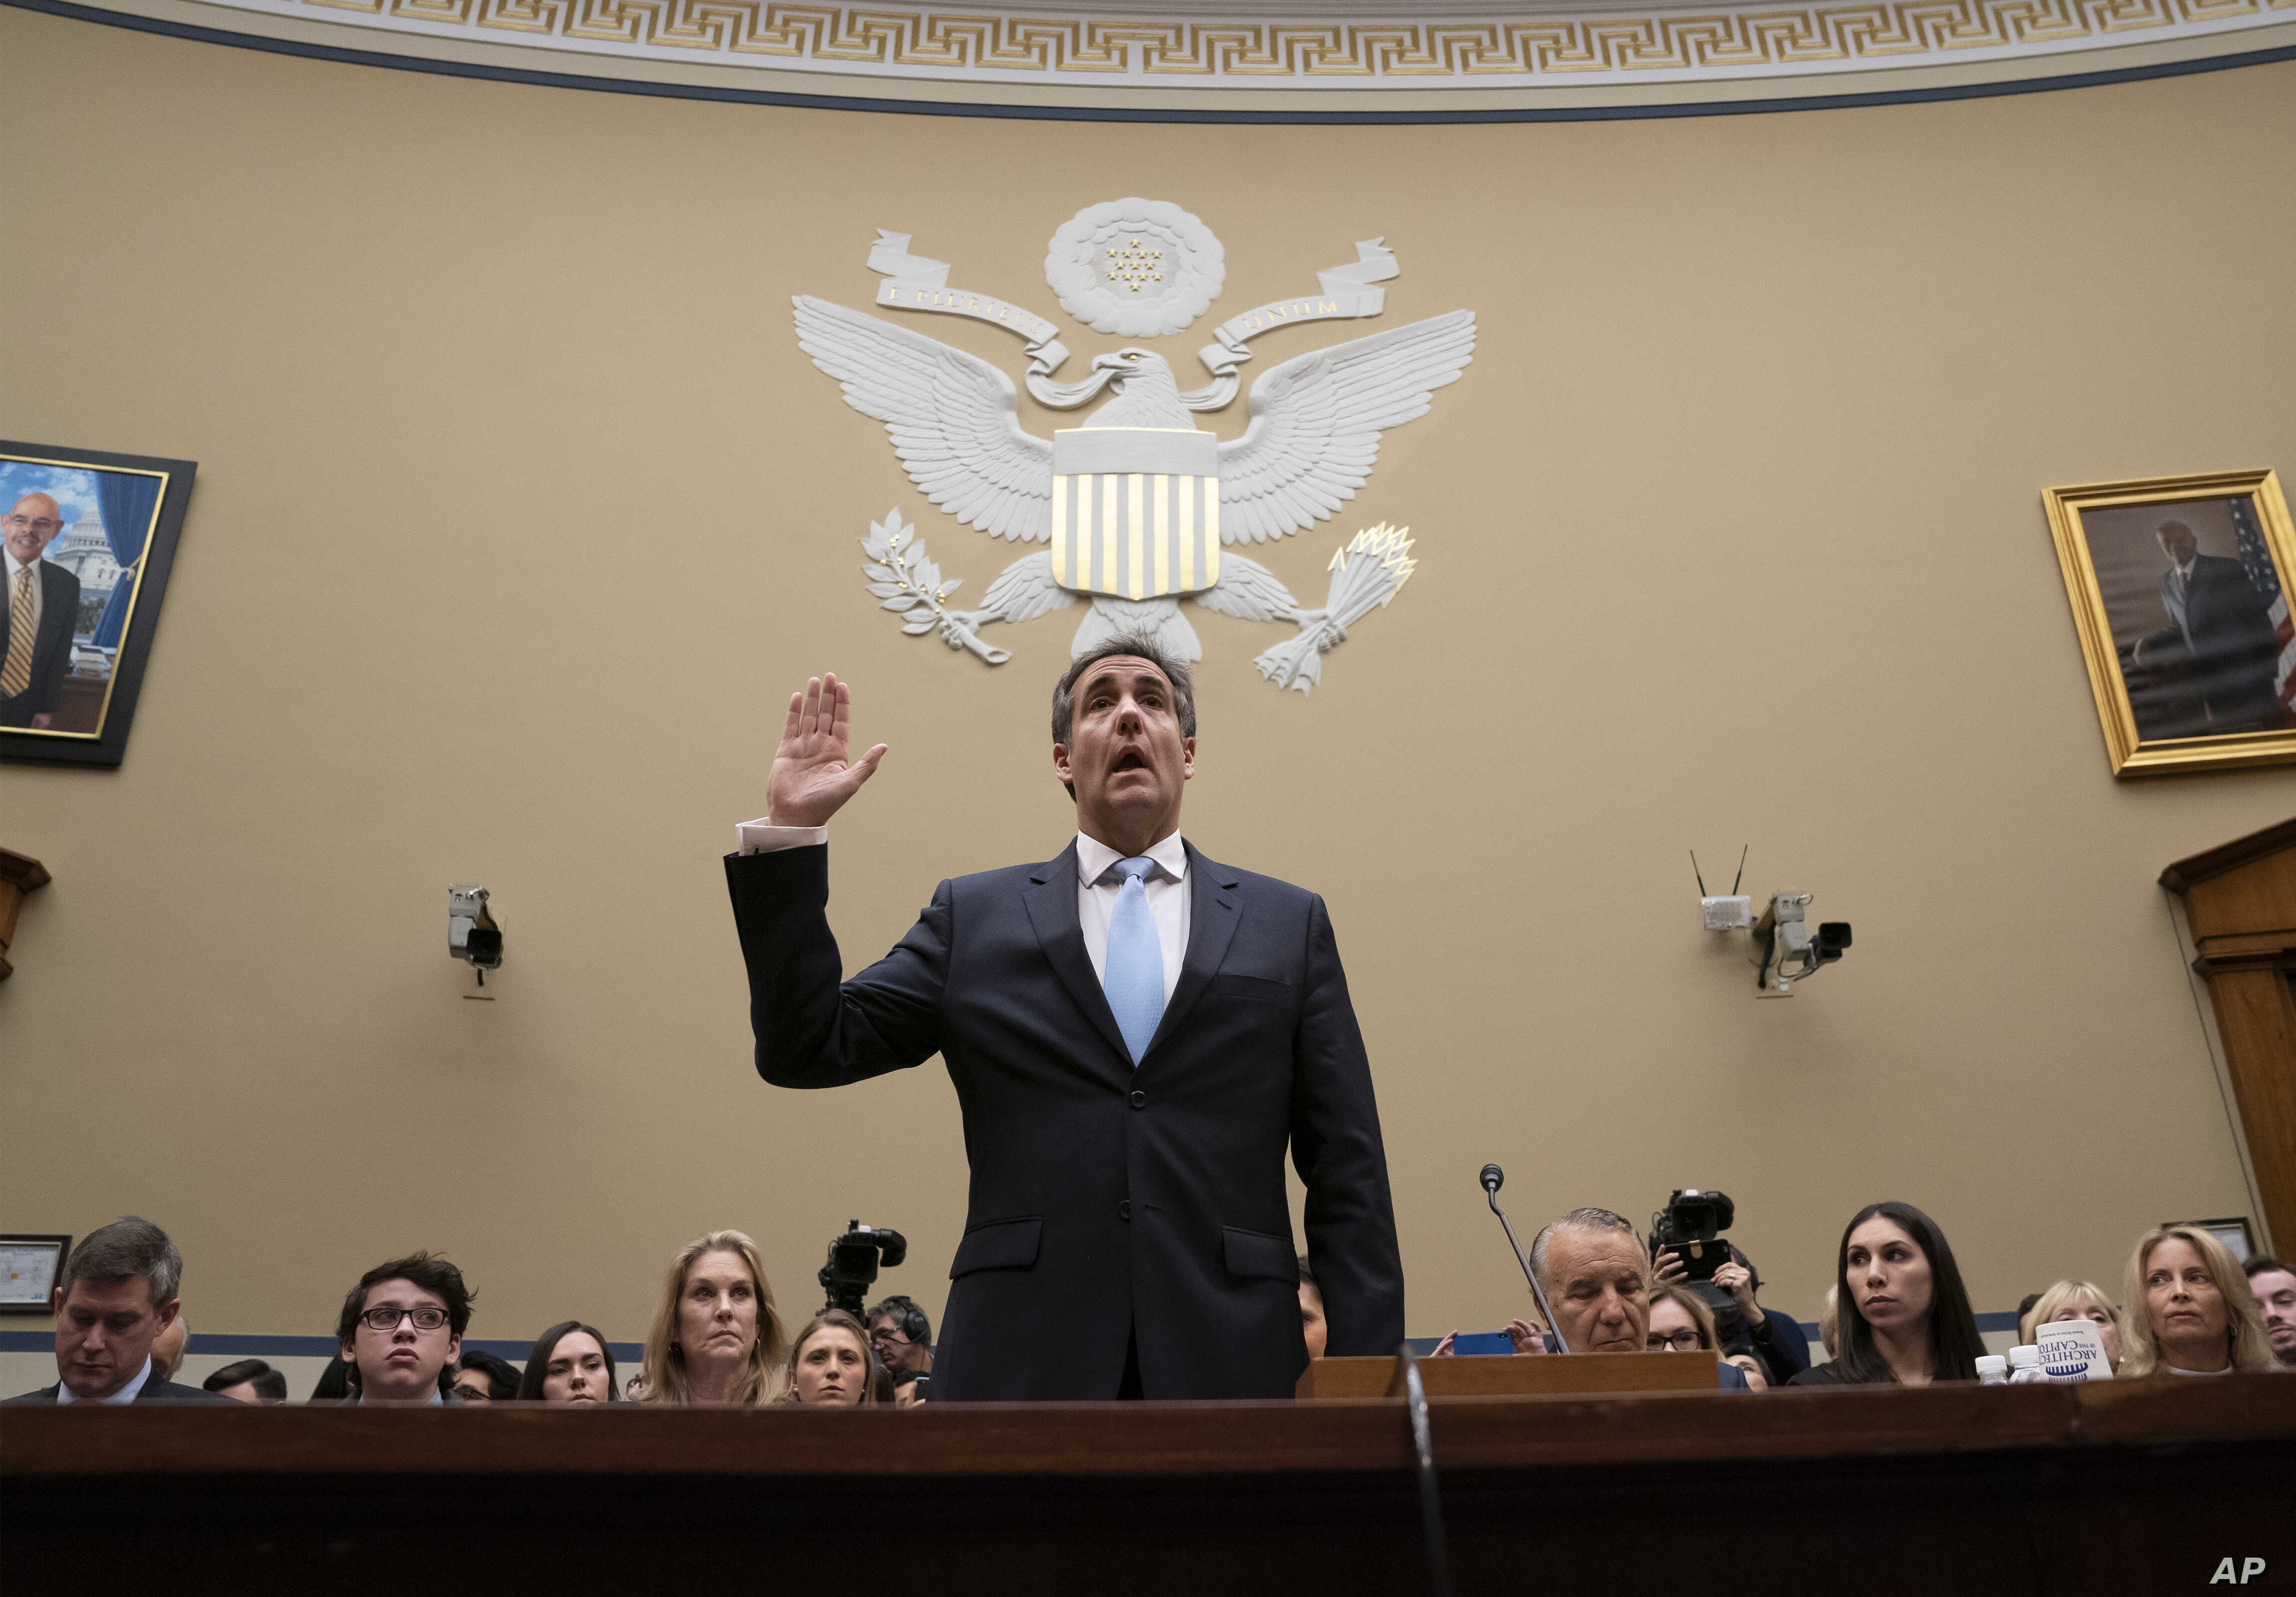 Michael Cohen, President Donald Trump's former personal lawyer, is sworn in to testify before the House Oversight and Reform Committee on Capitol Hill in Washington, Feb. 27, 2019.